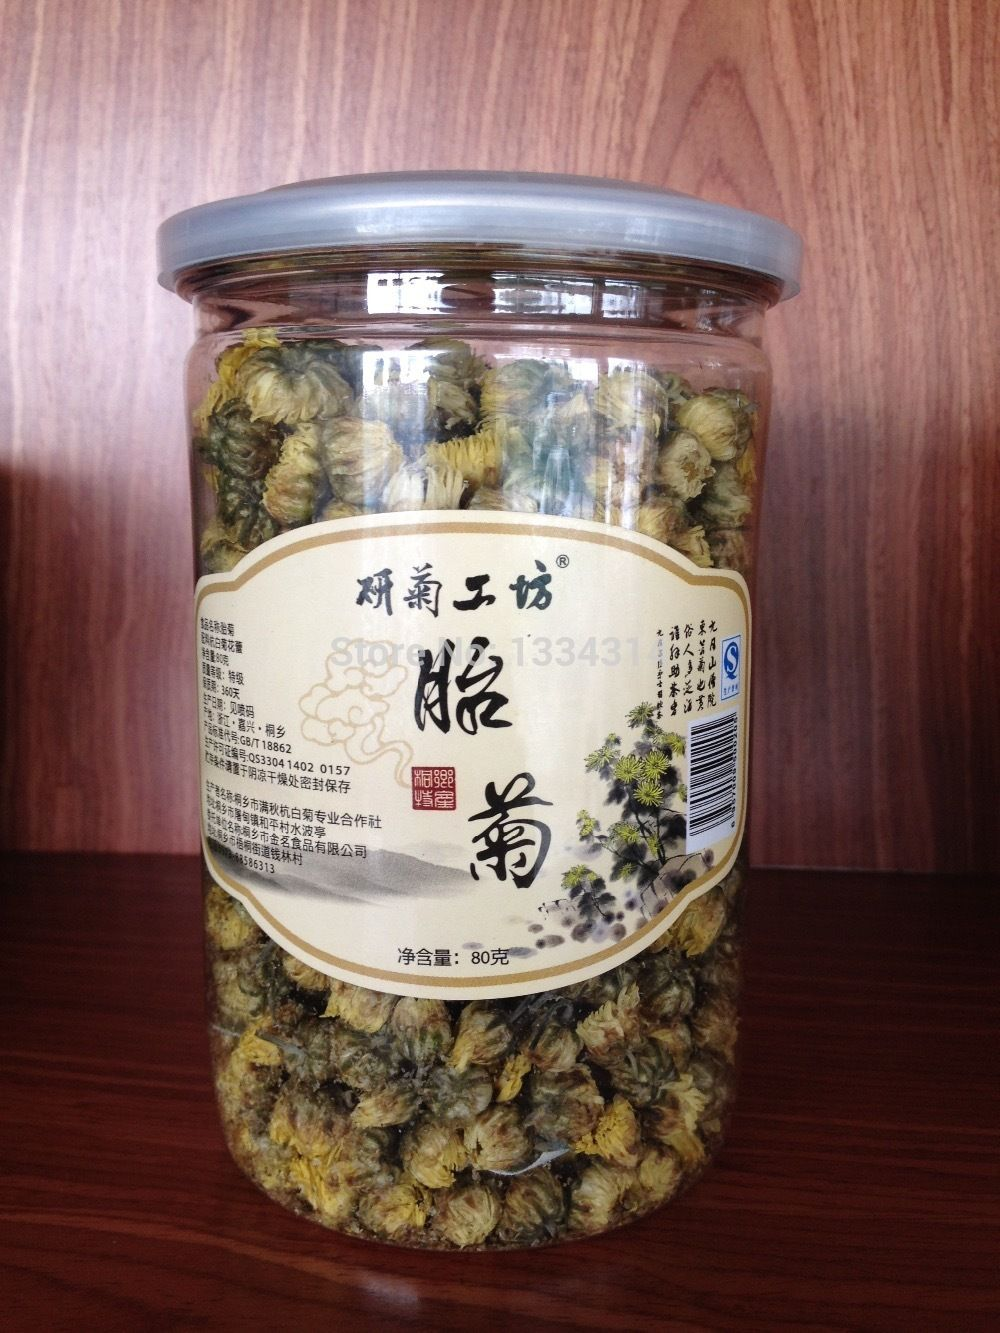 80g Top Grade First Lot Picked White Chrysanthemum Flower Tea Superfine Tender Chrysanthemum Bud Tea Flower Tea Chrysanthemum Flower White Chrysanthemum